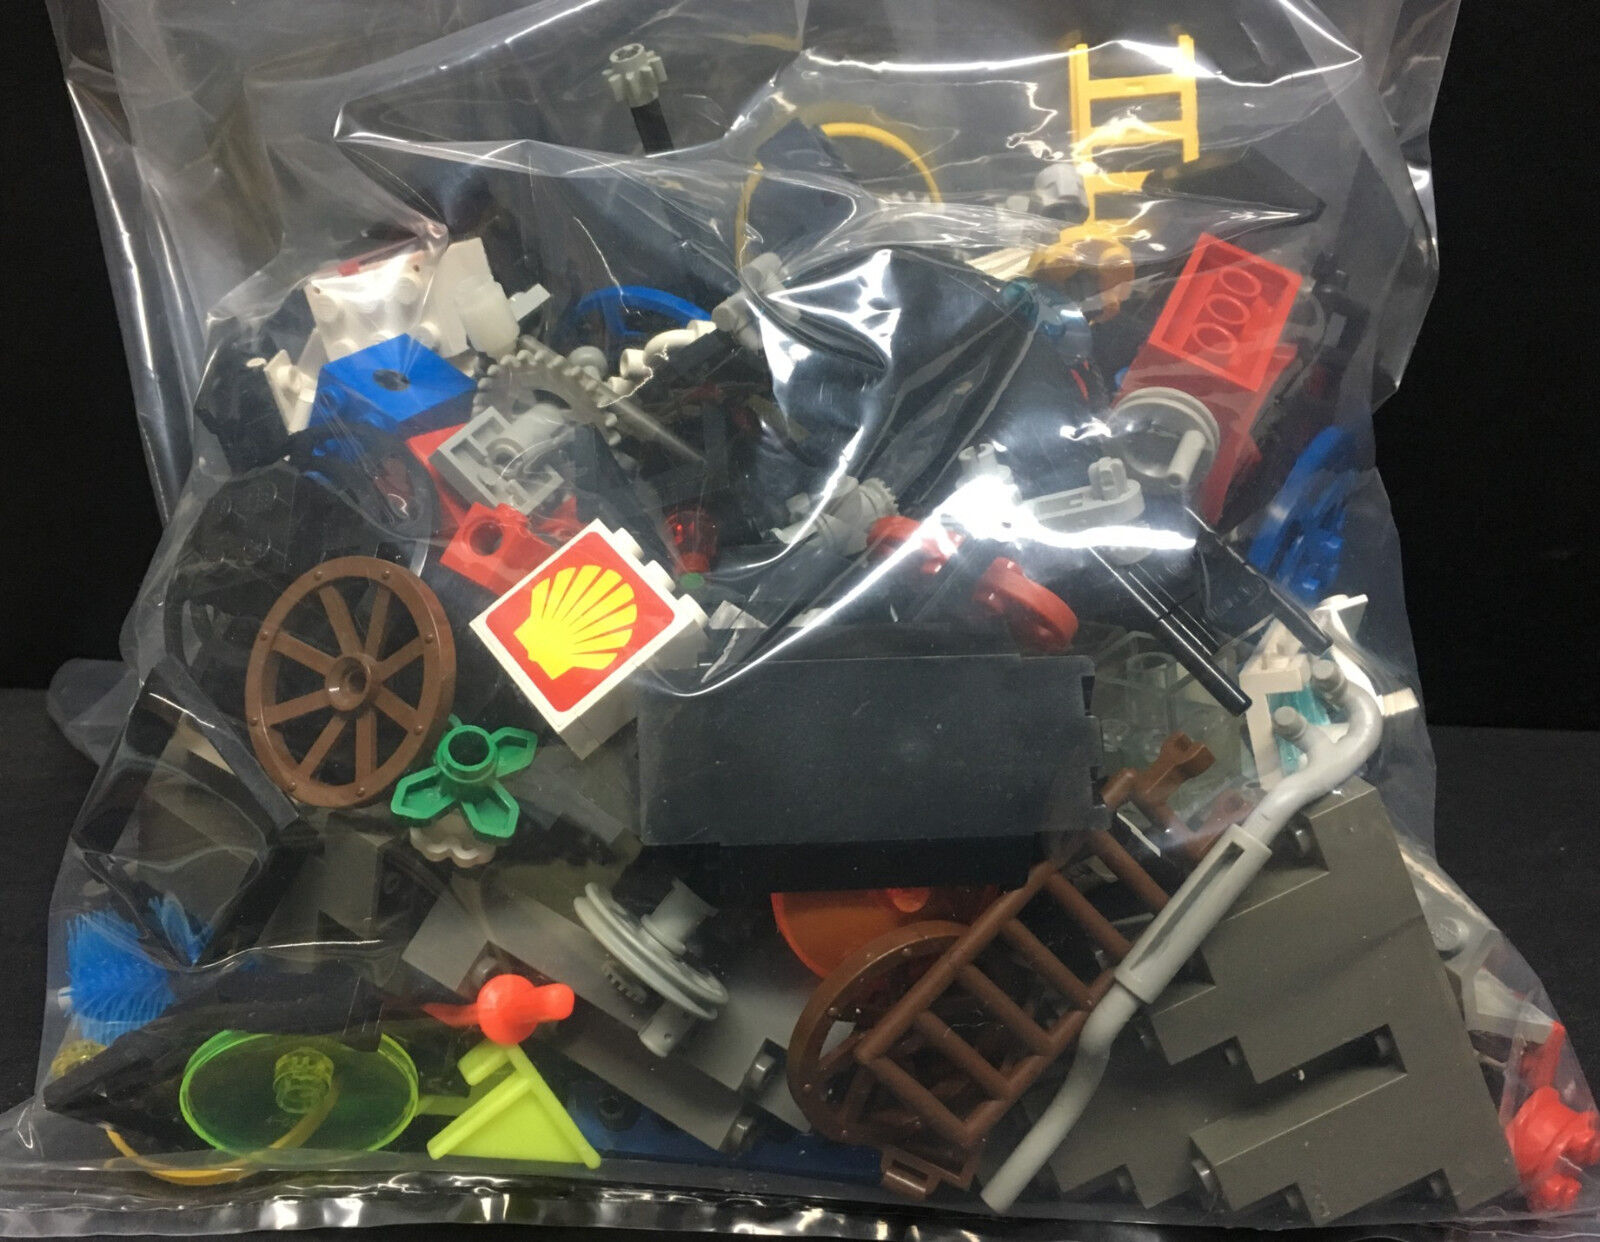 [65650] [65650] [65650] c1990's LEGO & LEGO TECHNIC PARTS from CITY, CASTLE, PIRATE SETS  +1 lb. 5440dd